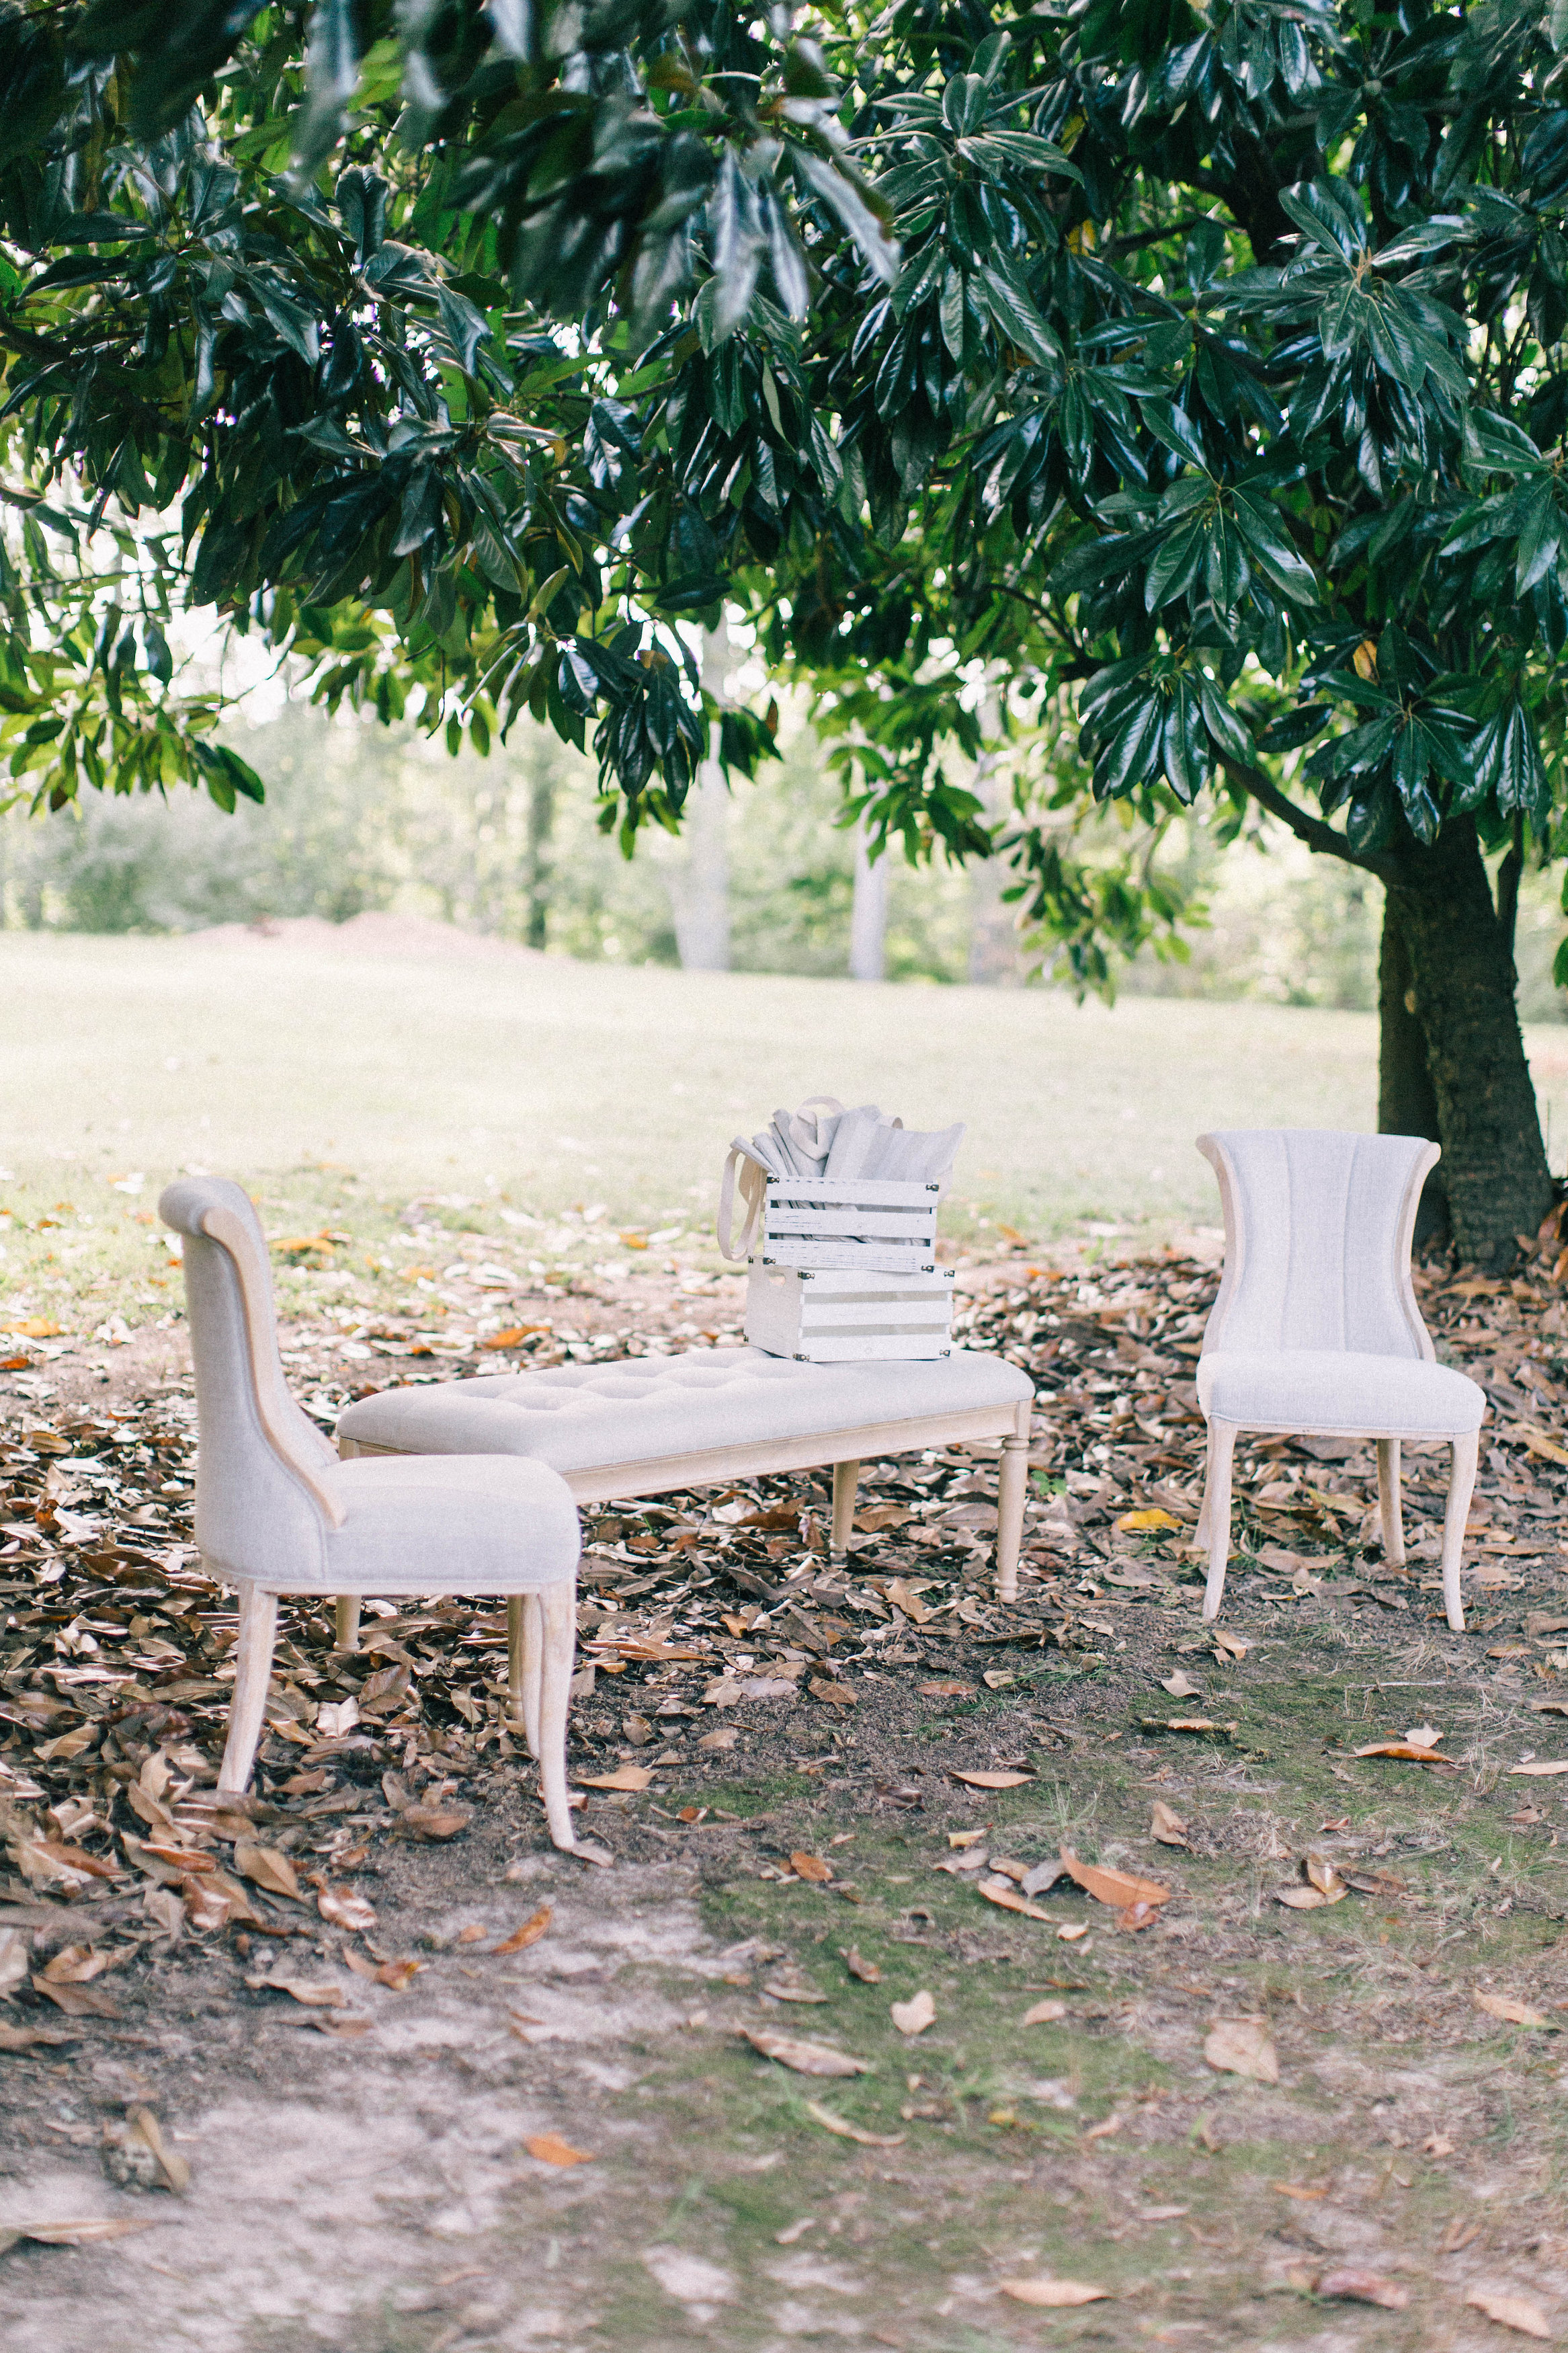 Seating area under magnolia trees.